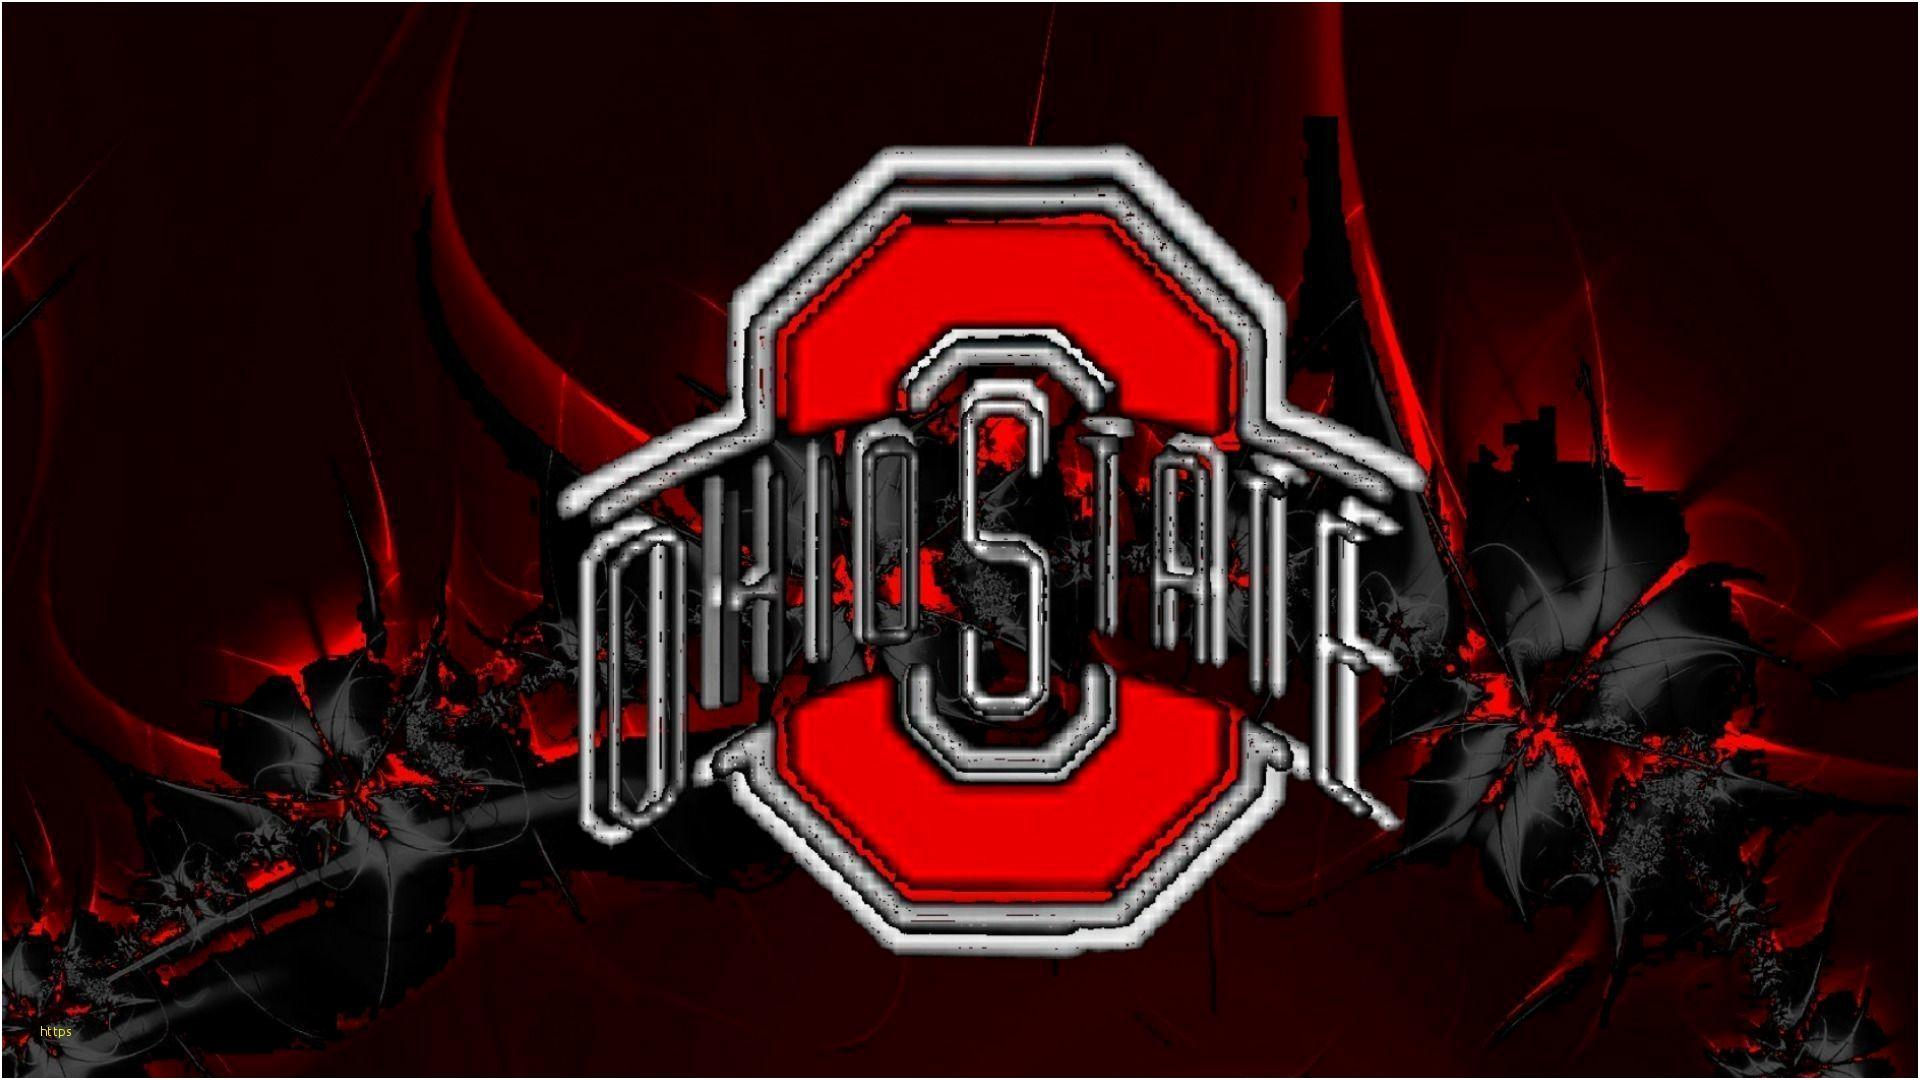 Ohio State Wallpapers Inspirational Ohio State Buckeye Wallpapers